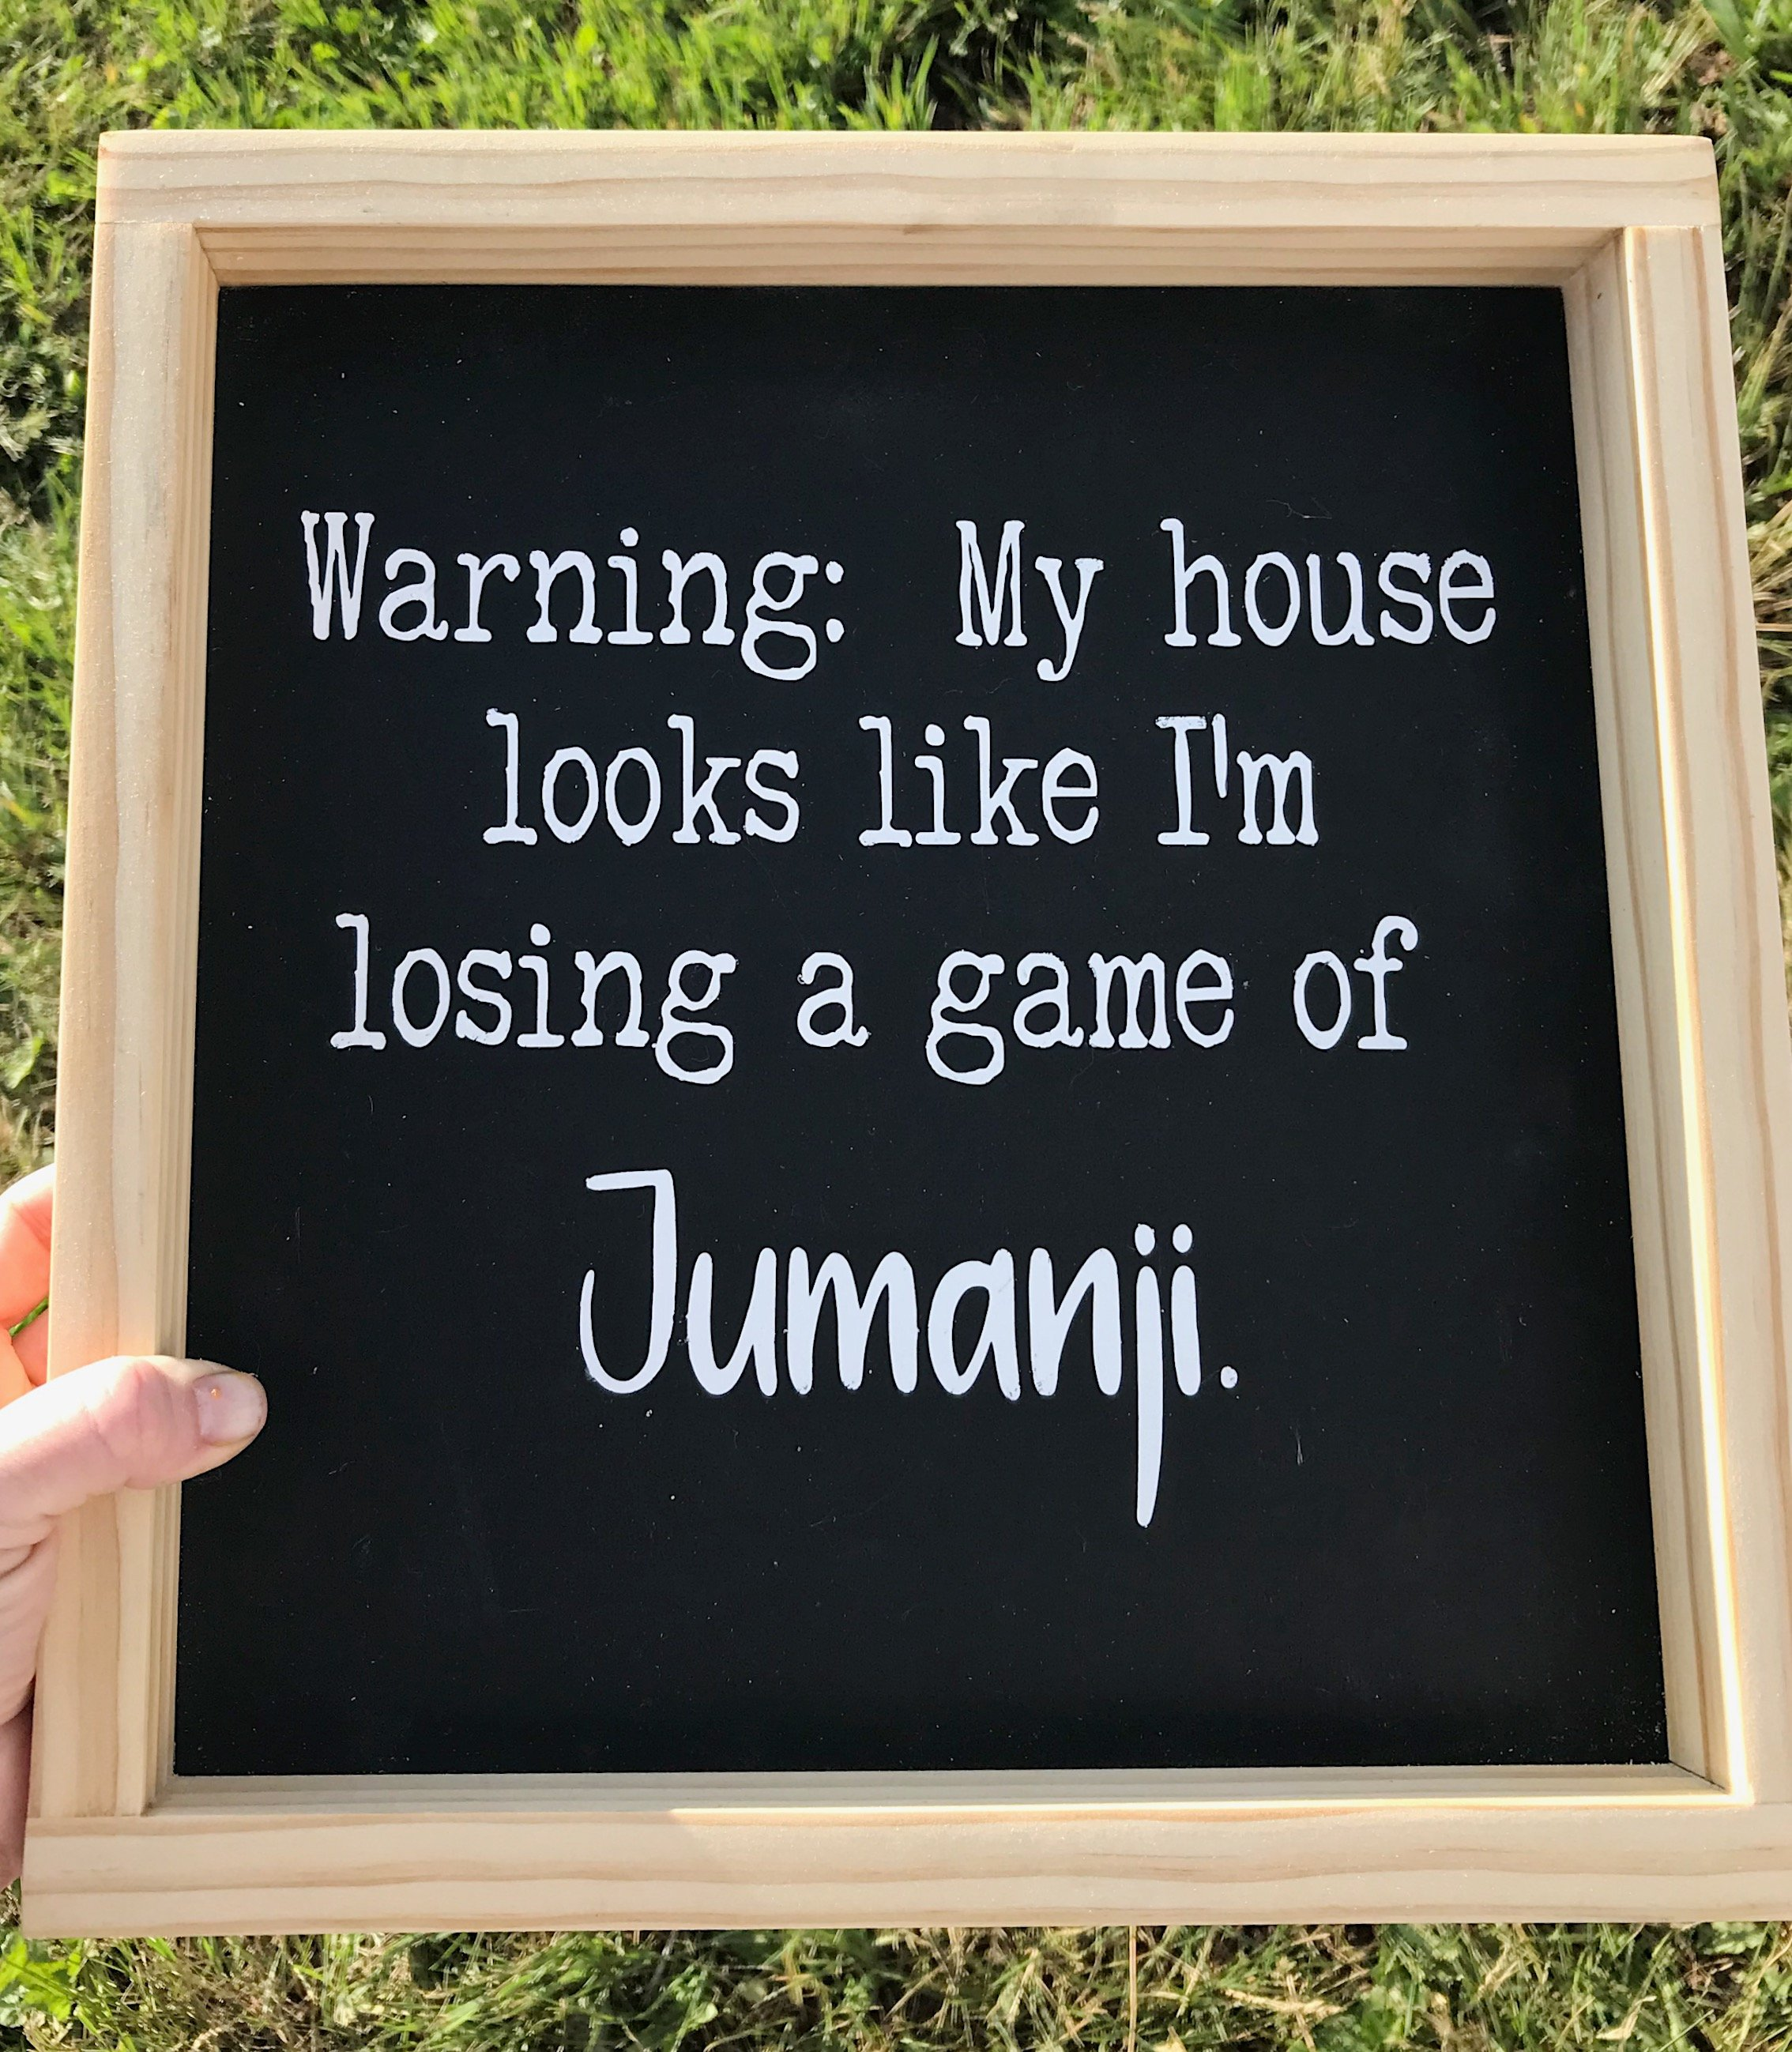 Warning: My house looks like I'm losing a game of Jumanji, Handmade Wood Sign, Funny Wood Sign, Funny Sign Farmhouse Decor, Home Decor